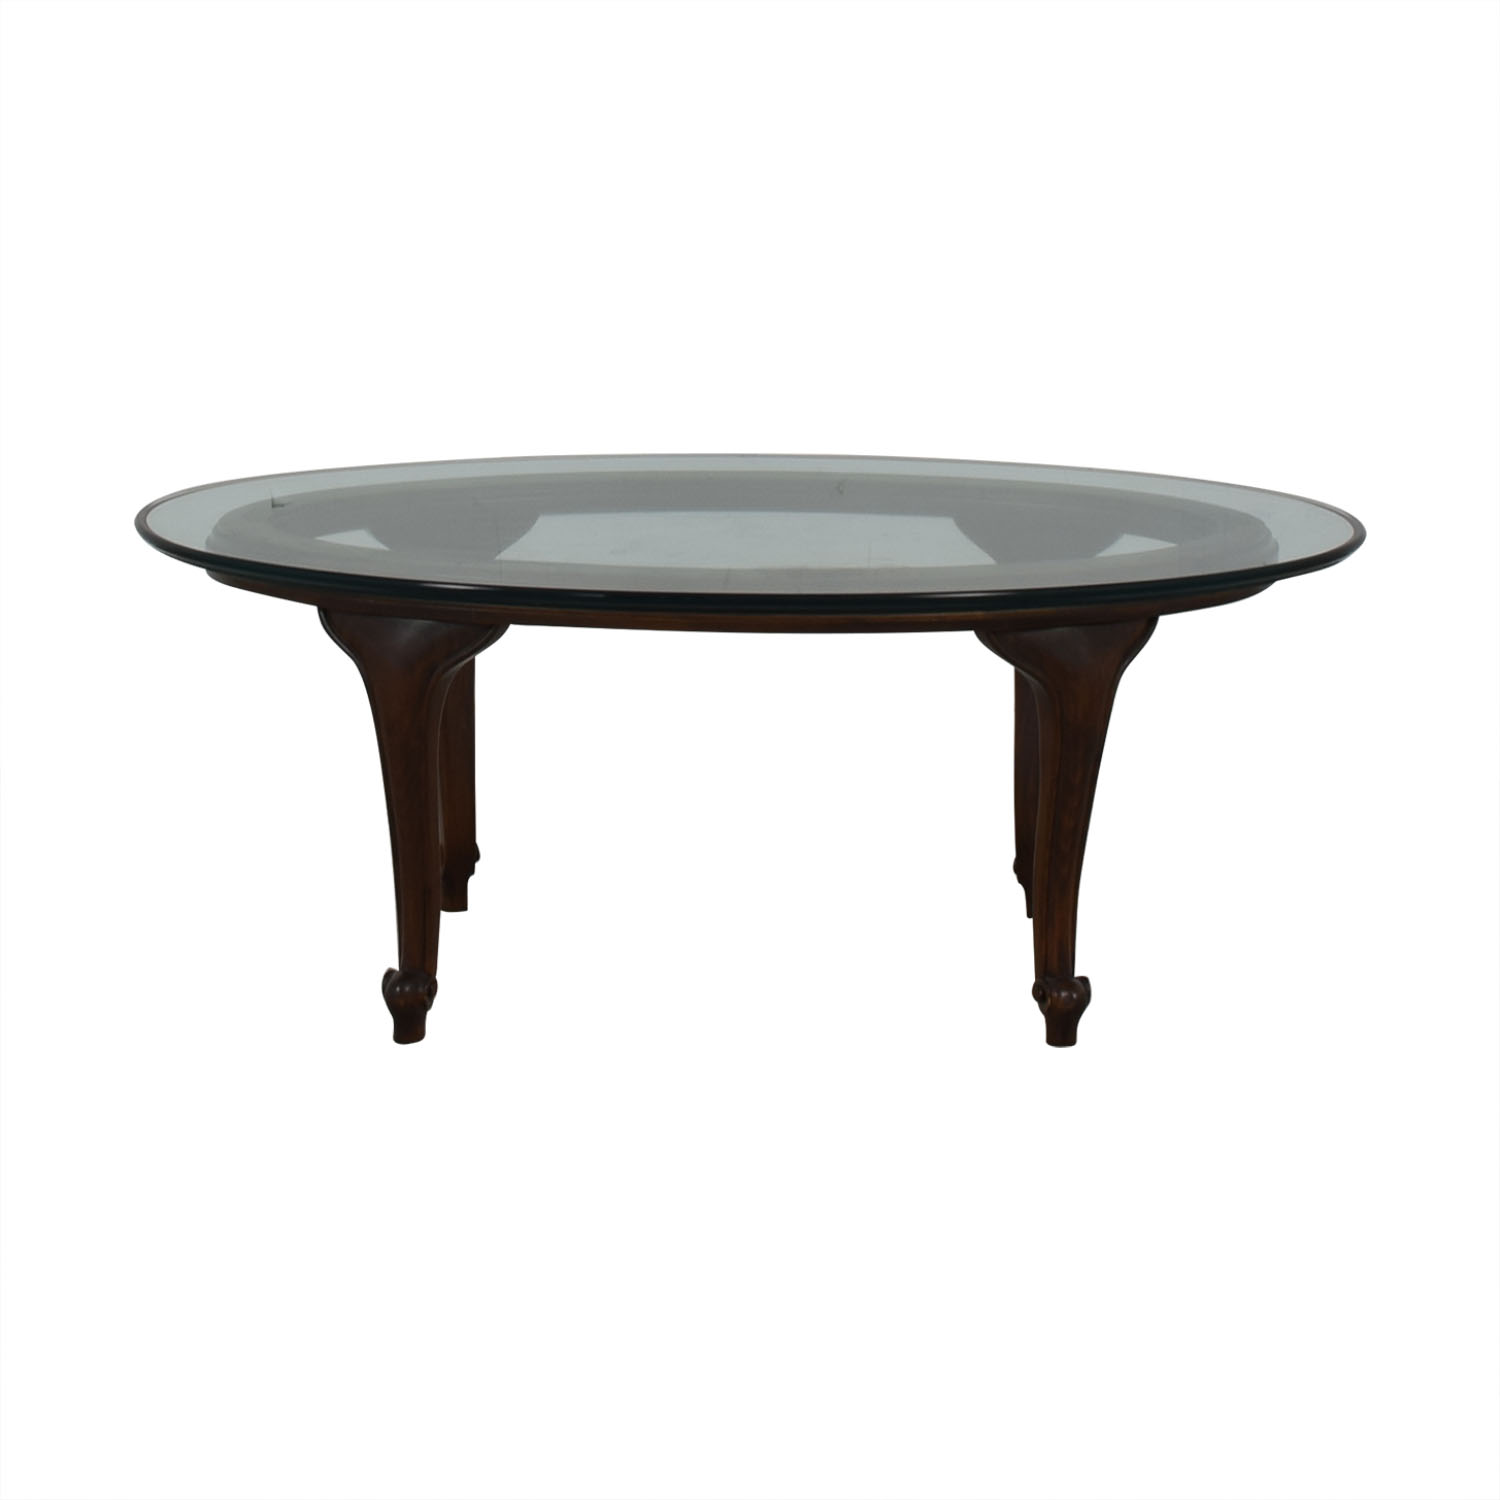 buy Macy's Oval Coffee Table Macy's